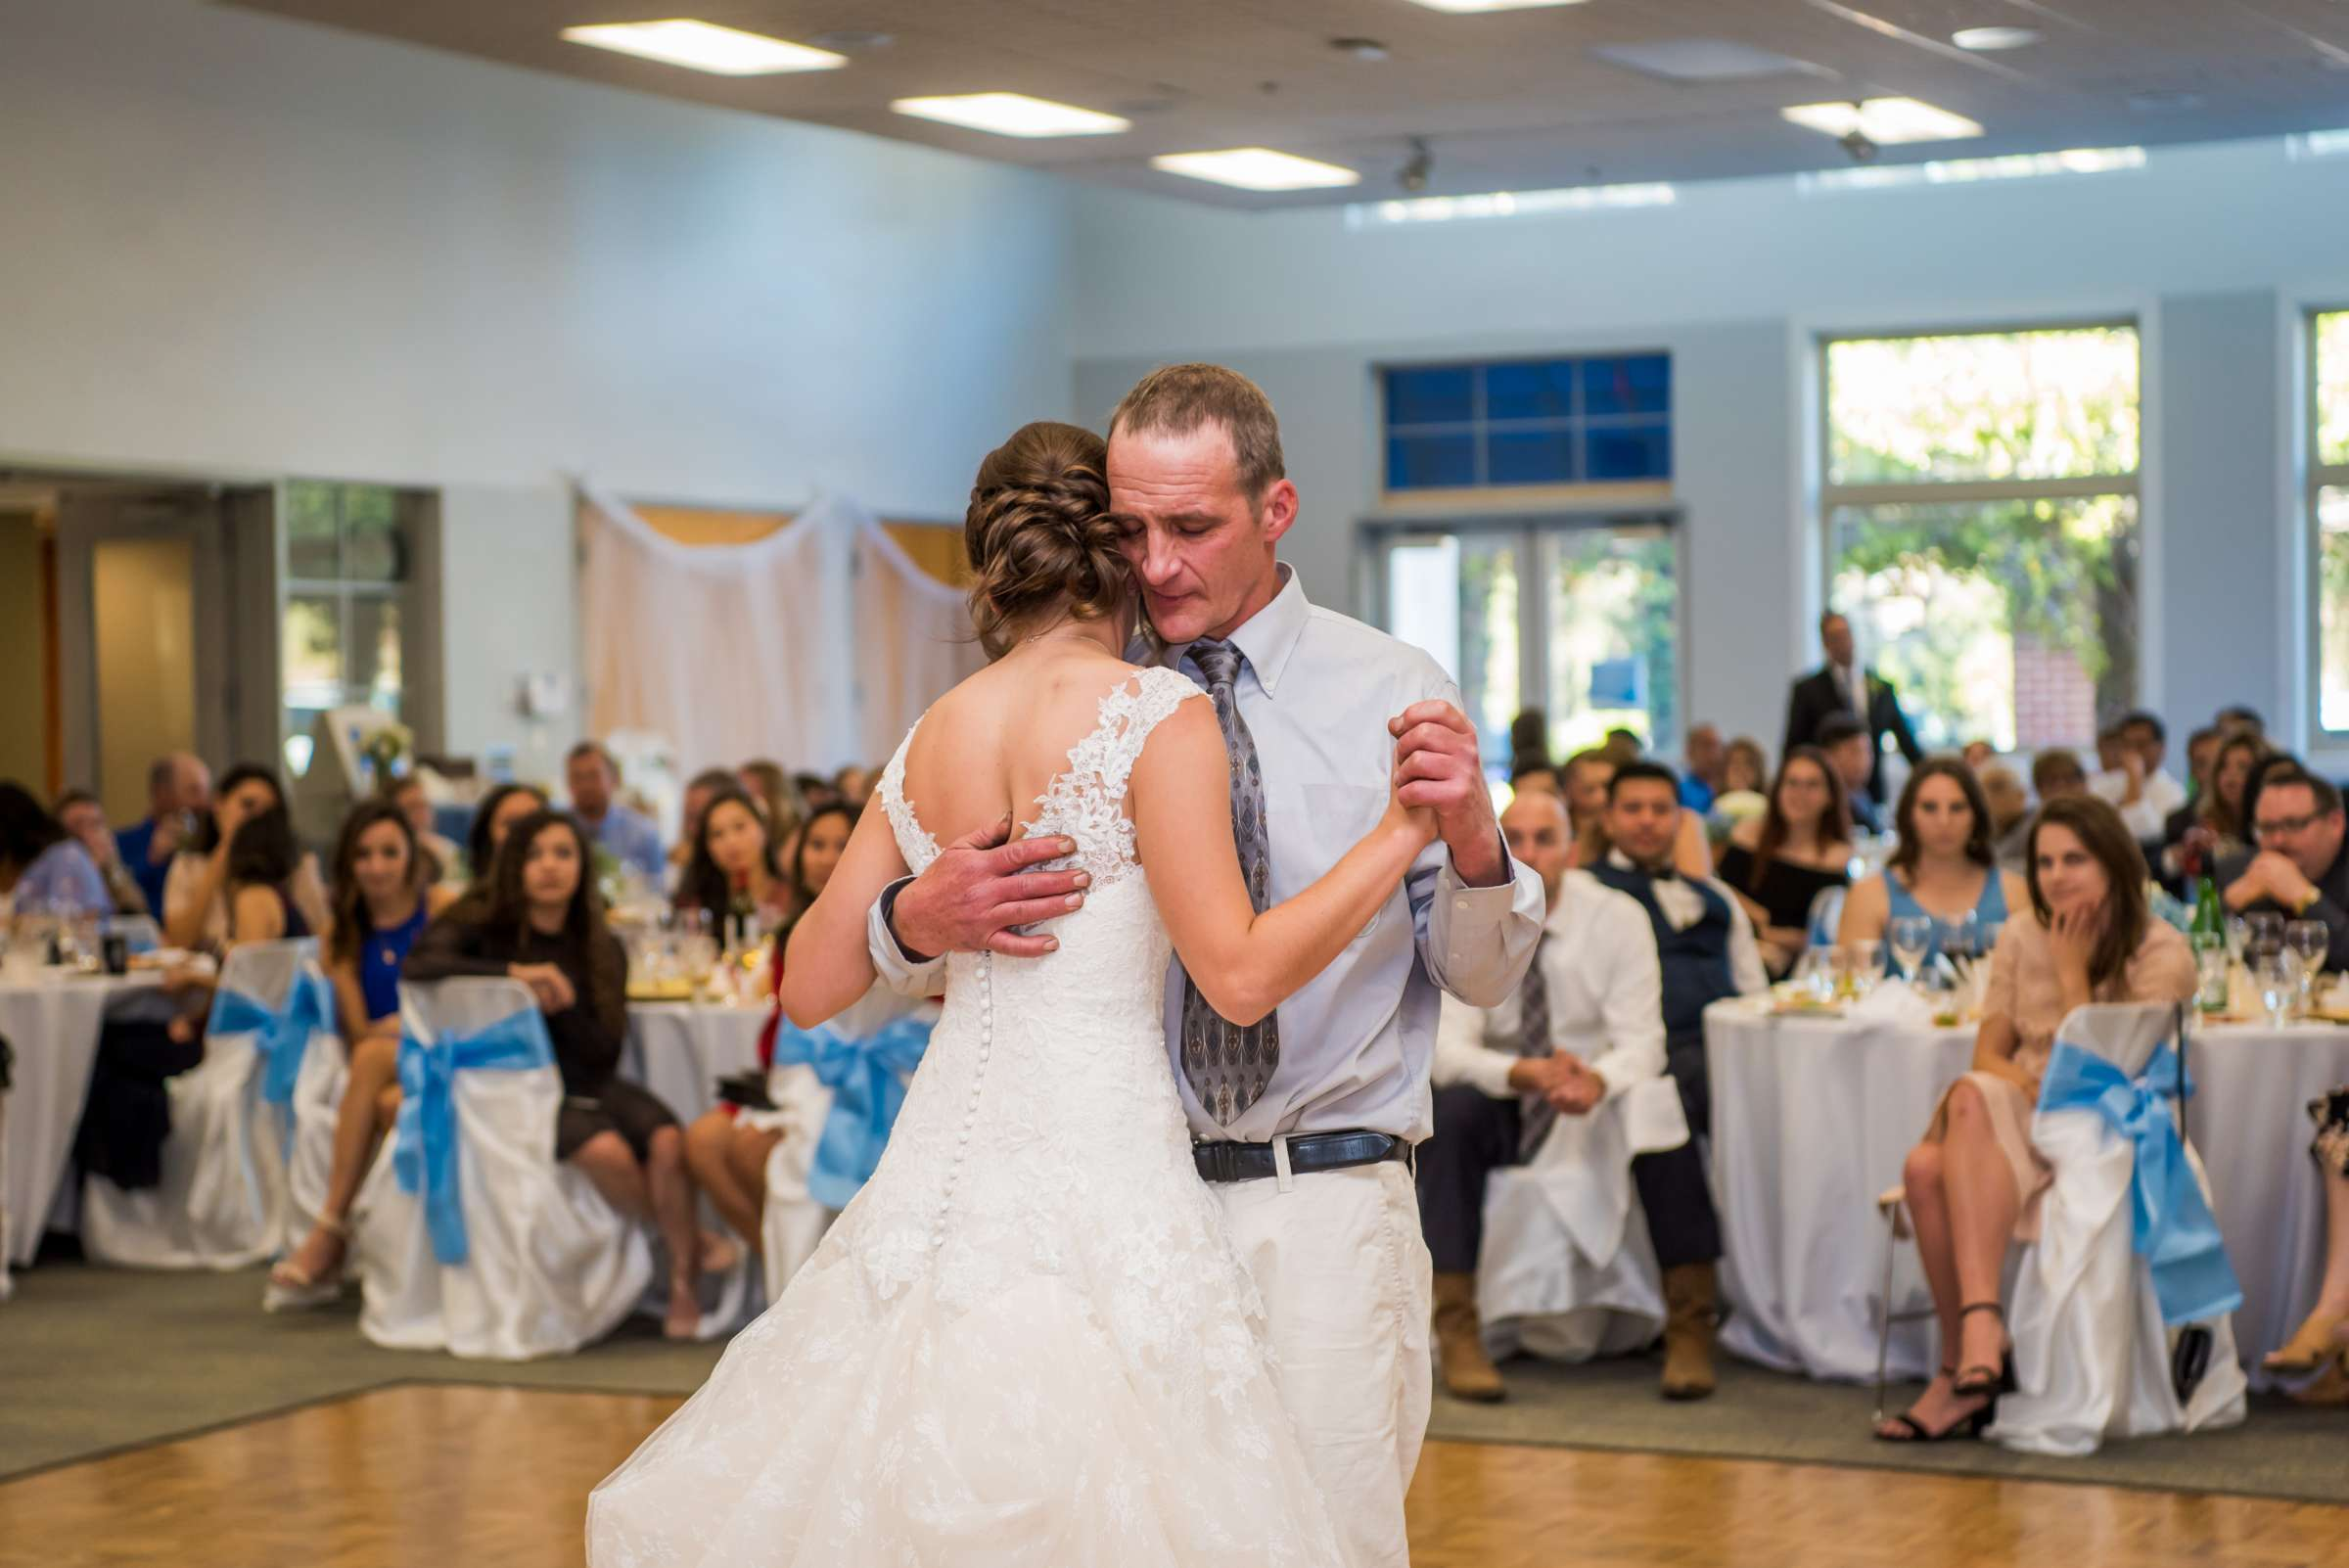 The Immaculata Wedding, Arianna and Jonah Wedding Photo #149 by True Photography